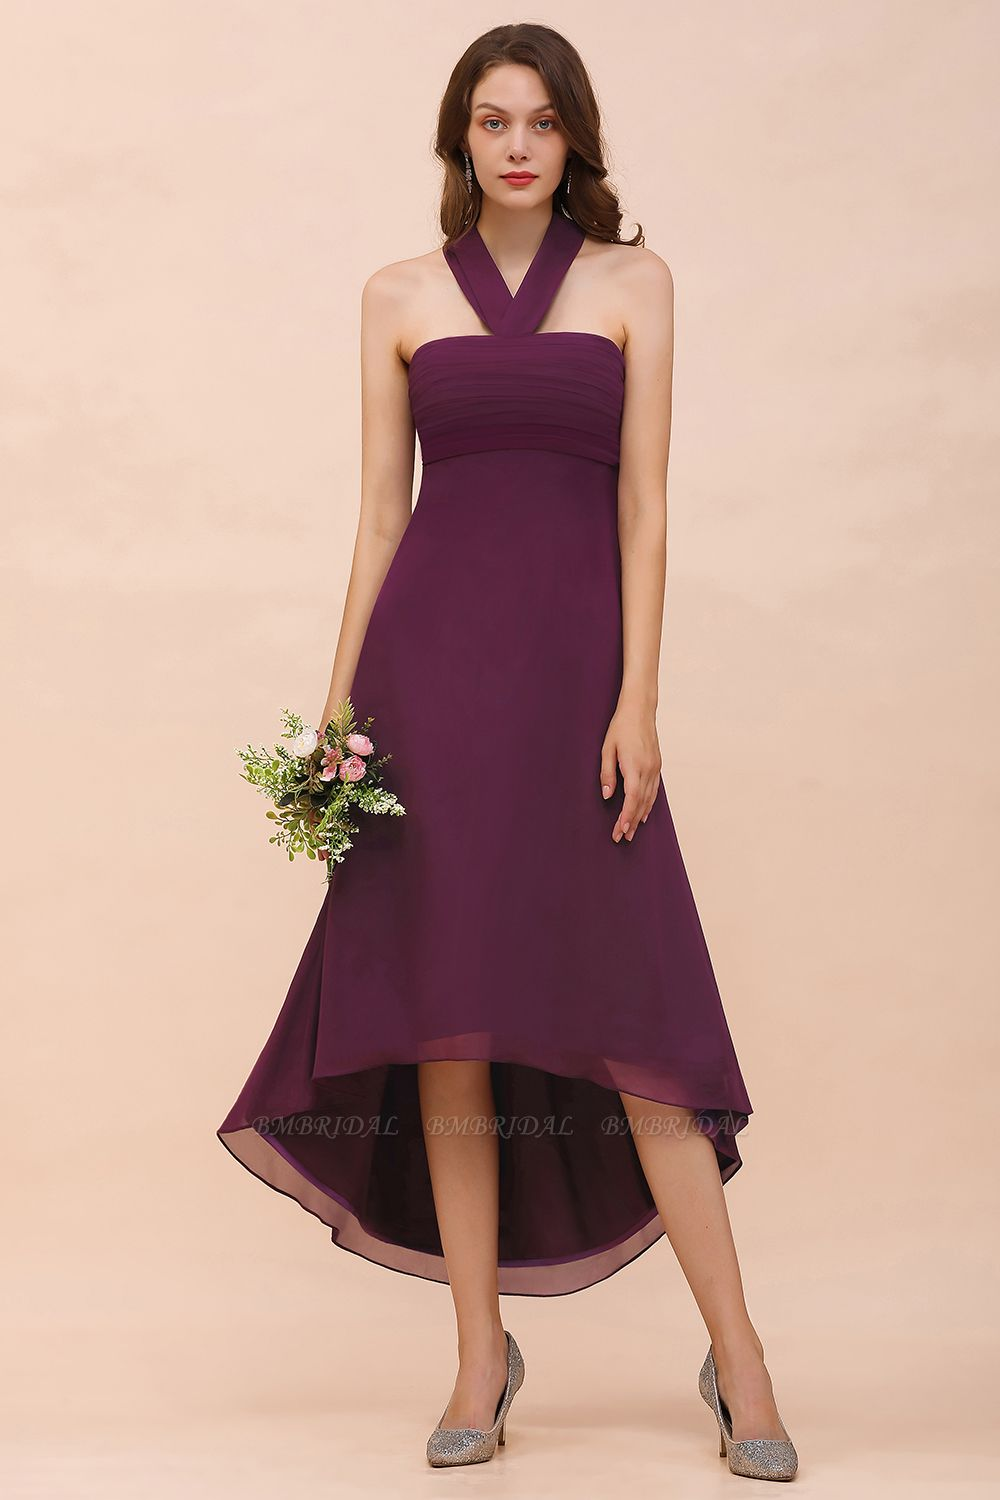 Stylish Hi-Lo Halter Grape Chiffon Affordable Bridesmaid Dresses with Ruffle